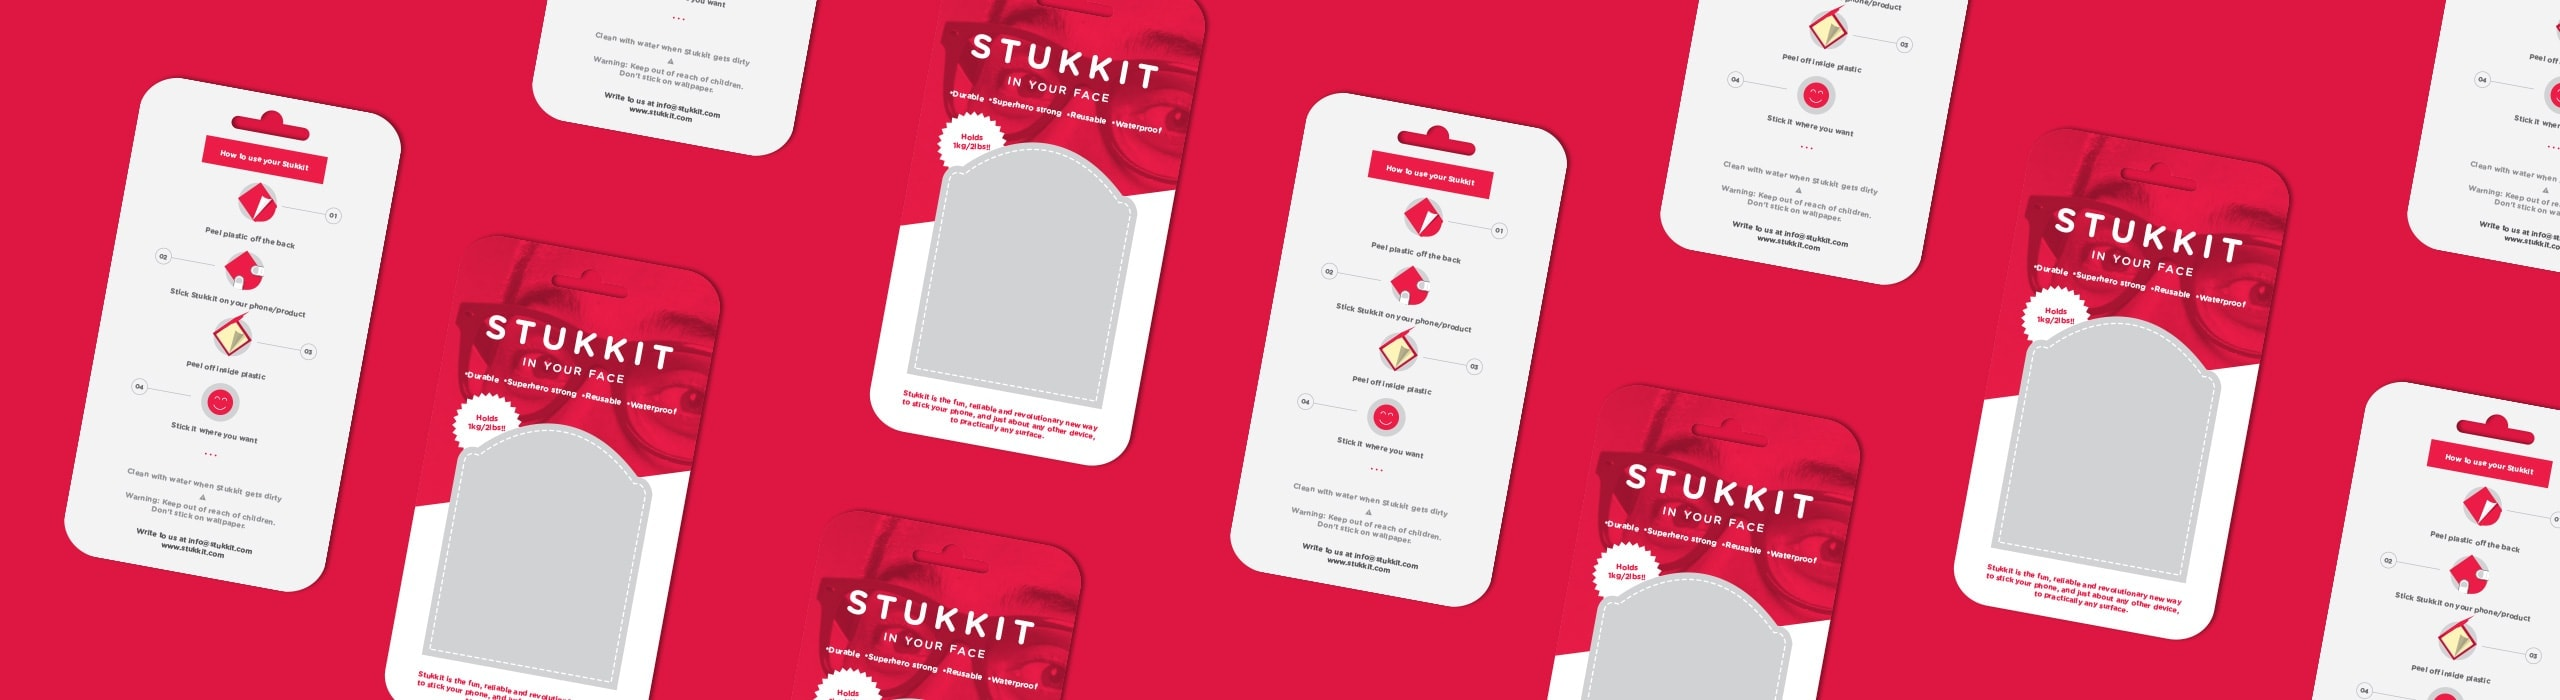 Stukkit - natie-stukkit-packaging-outer - Natie Branding Agency